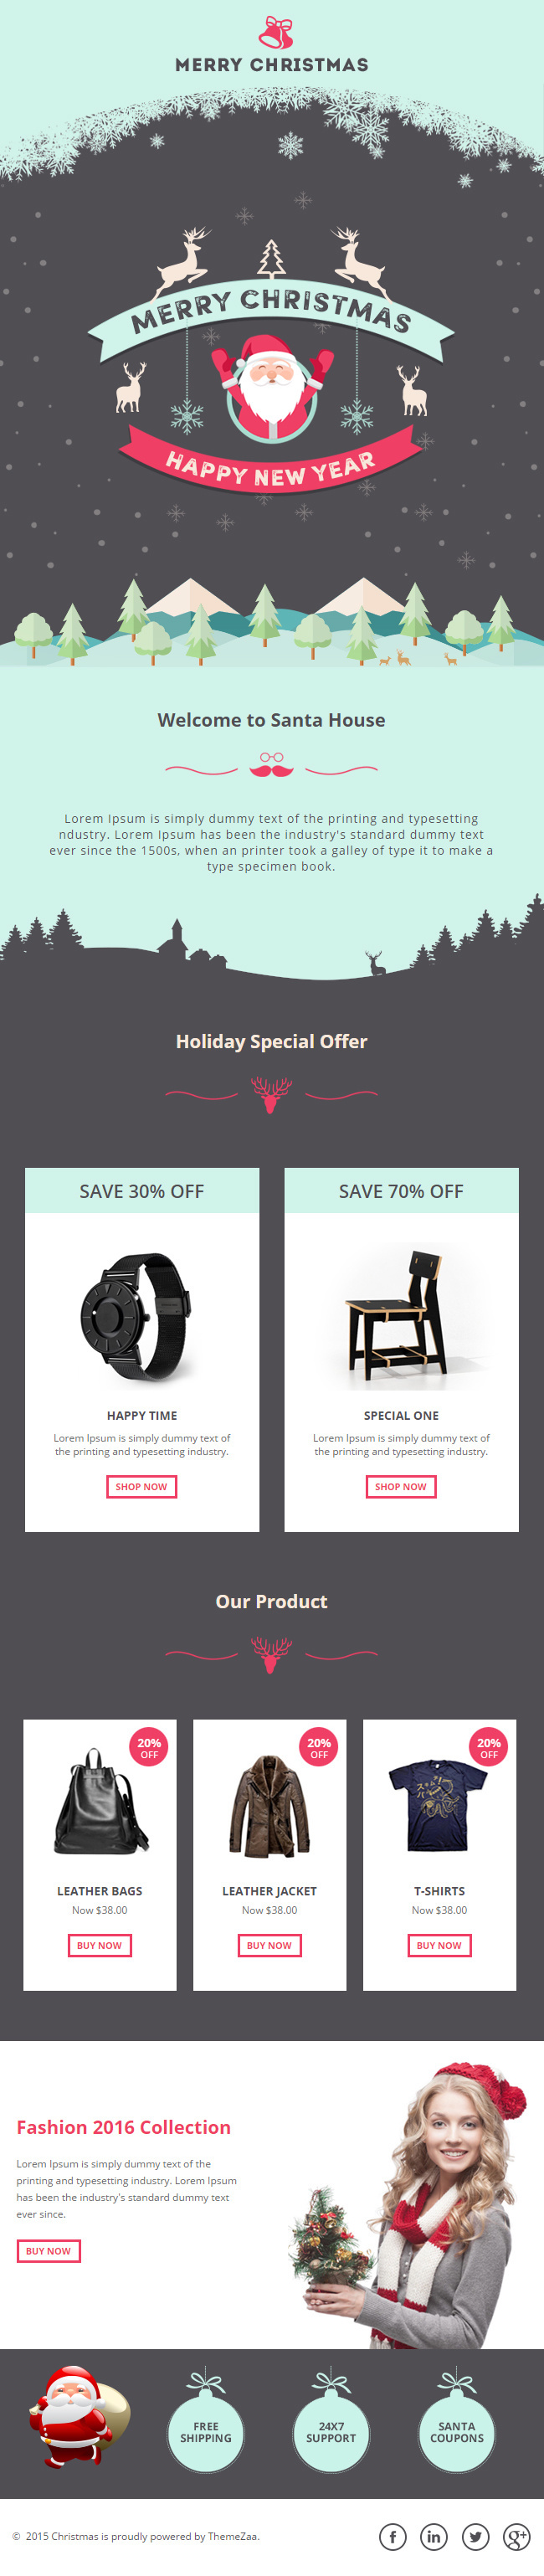 Best Responsive Email Templates Christmas Template images on ...